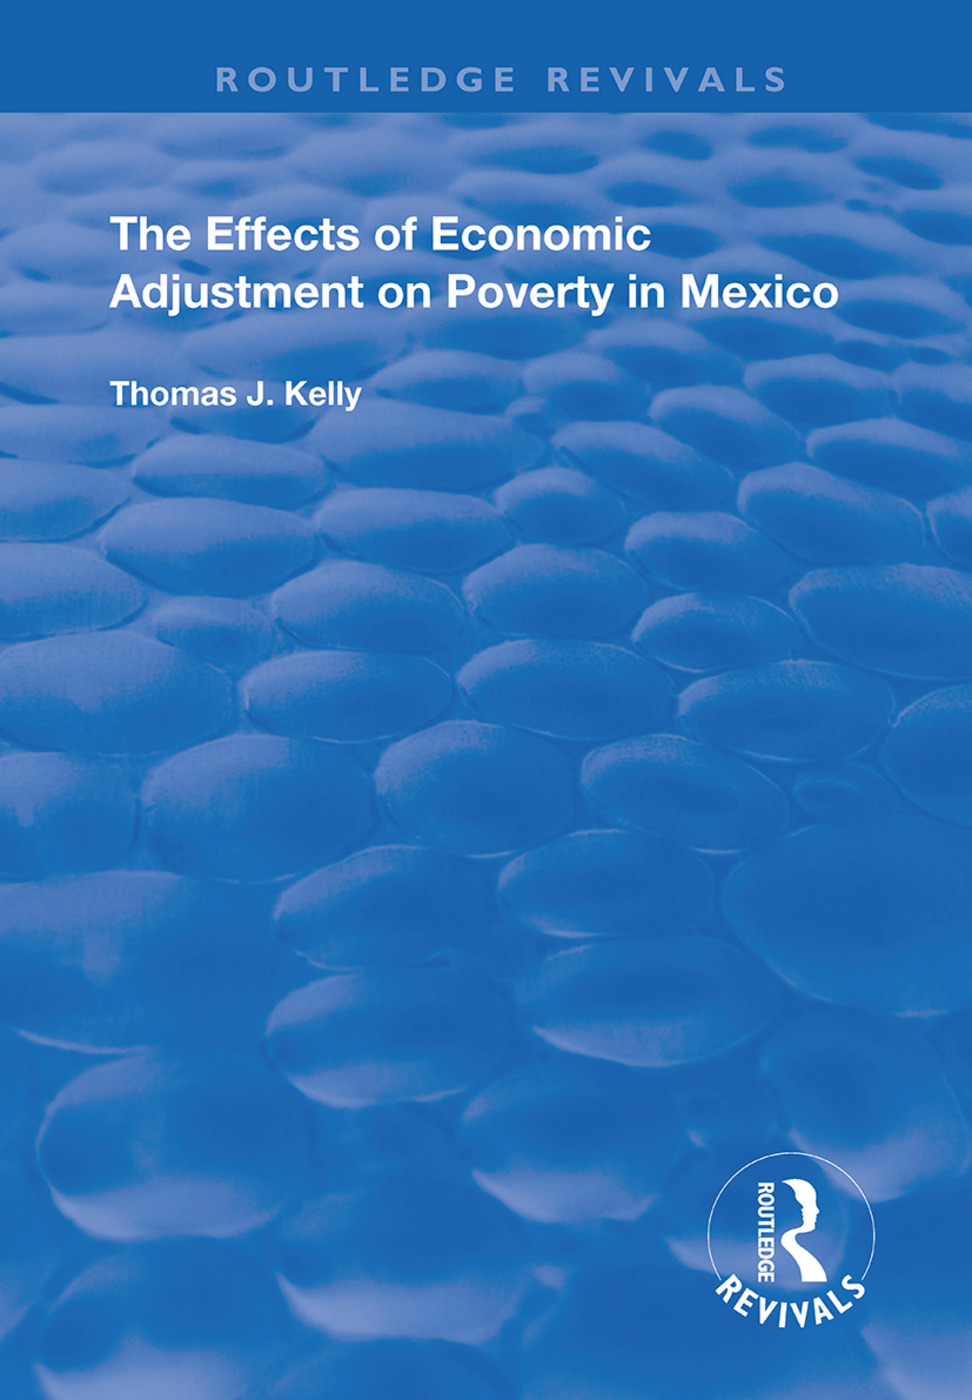 The Effects of Economic Adjustment on Poverty in Mexico book cover